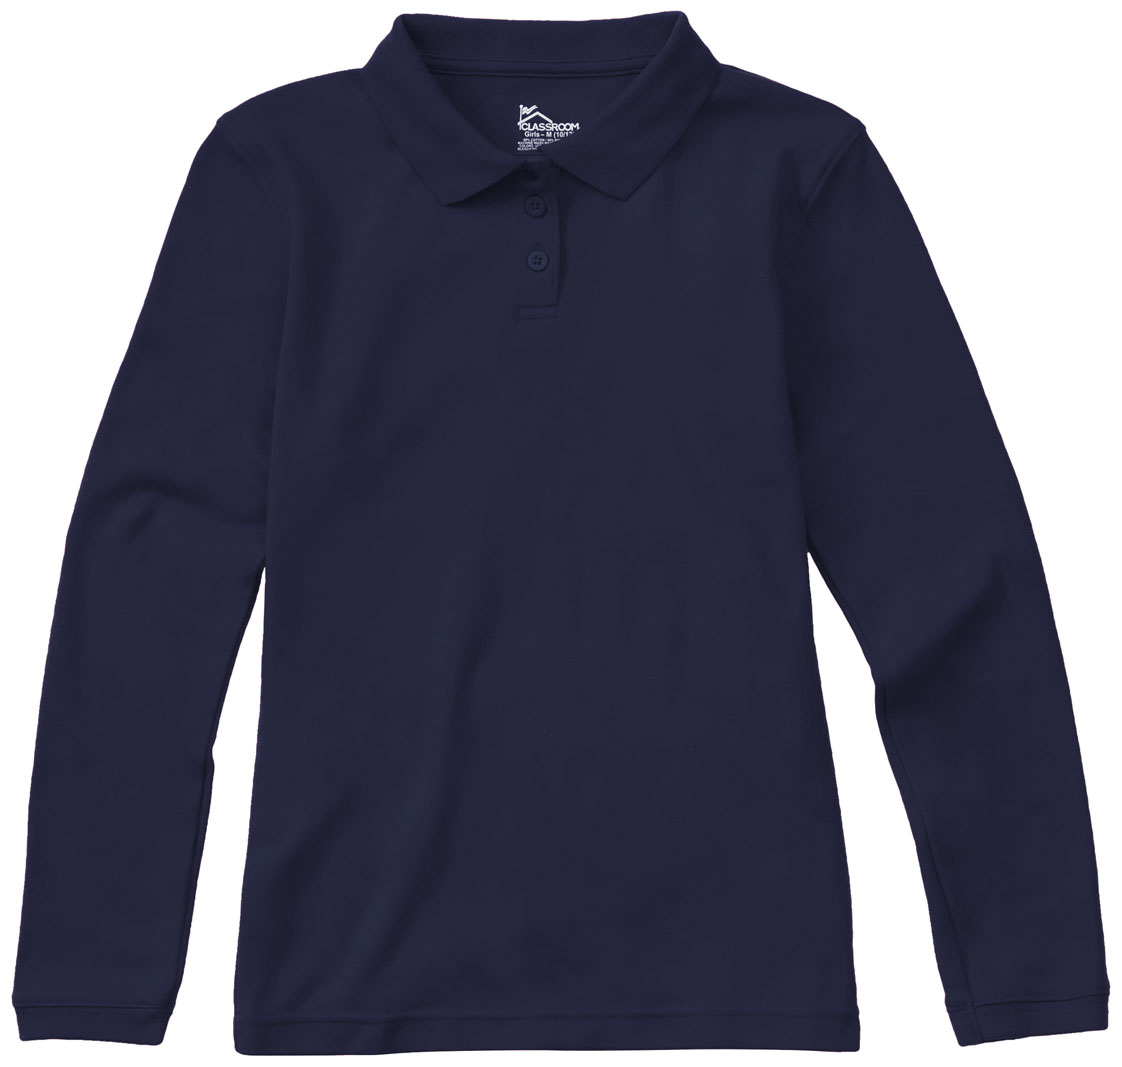 dcb77a456 Classroom Junior Long Sleeve Fitted Interlock Polo in SS Navy 58544 ...